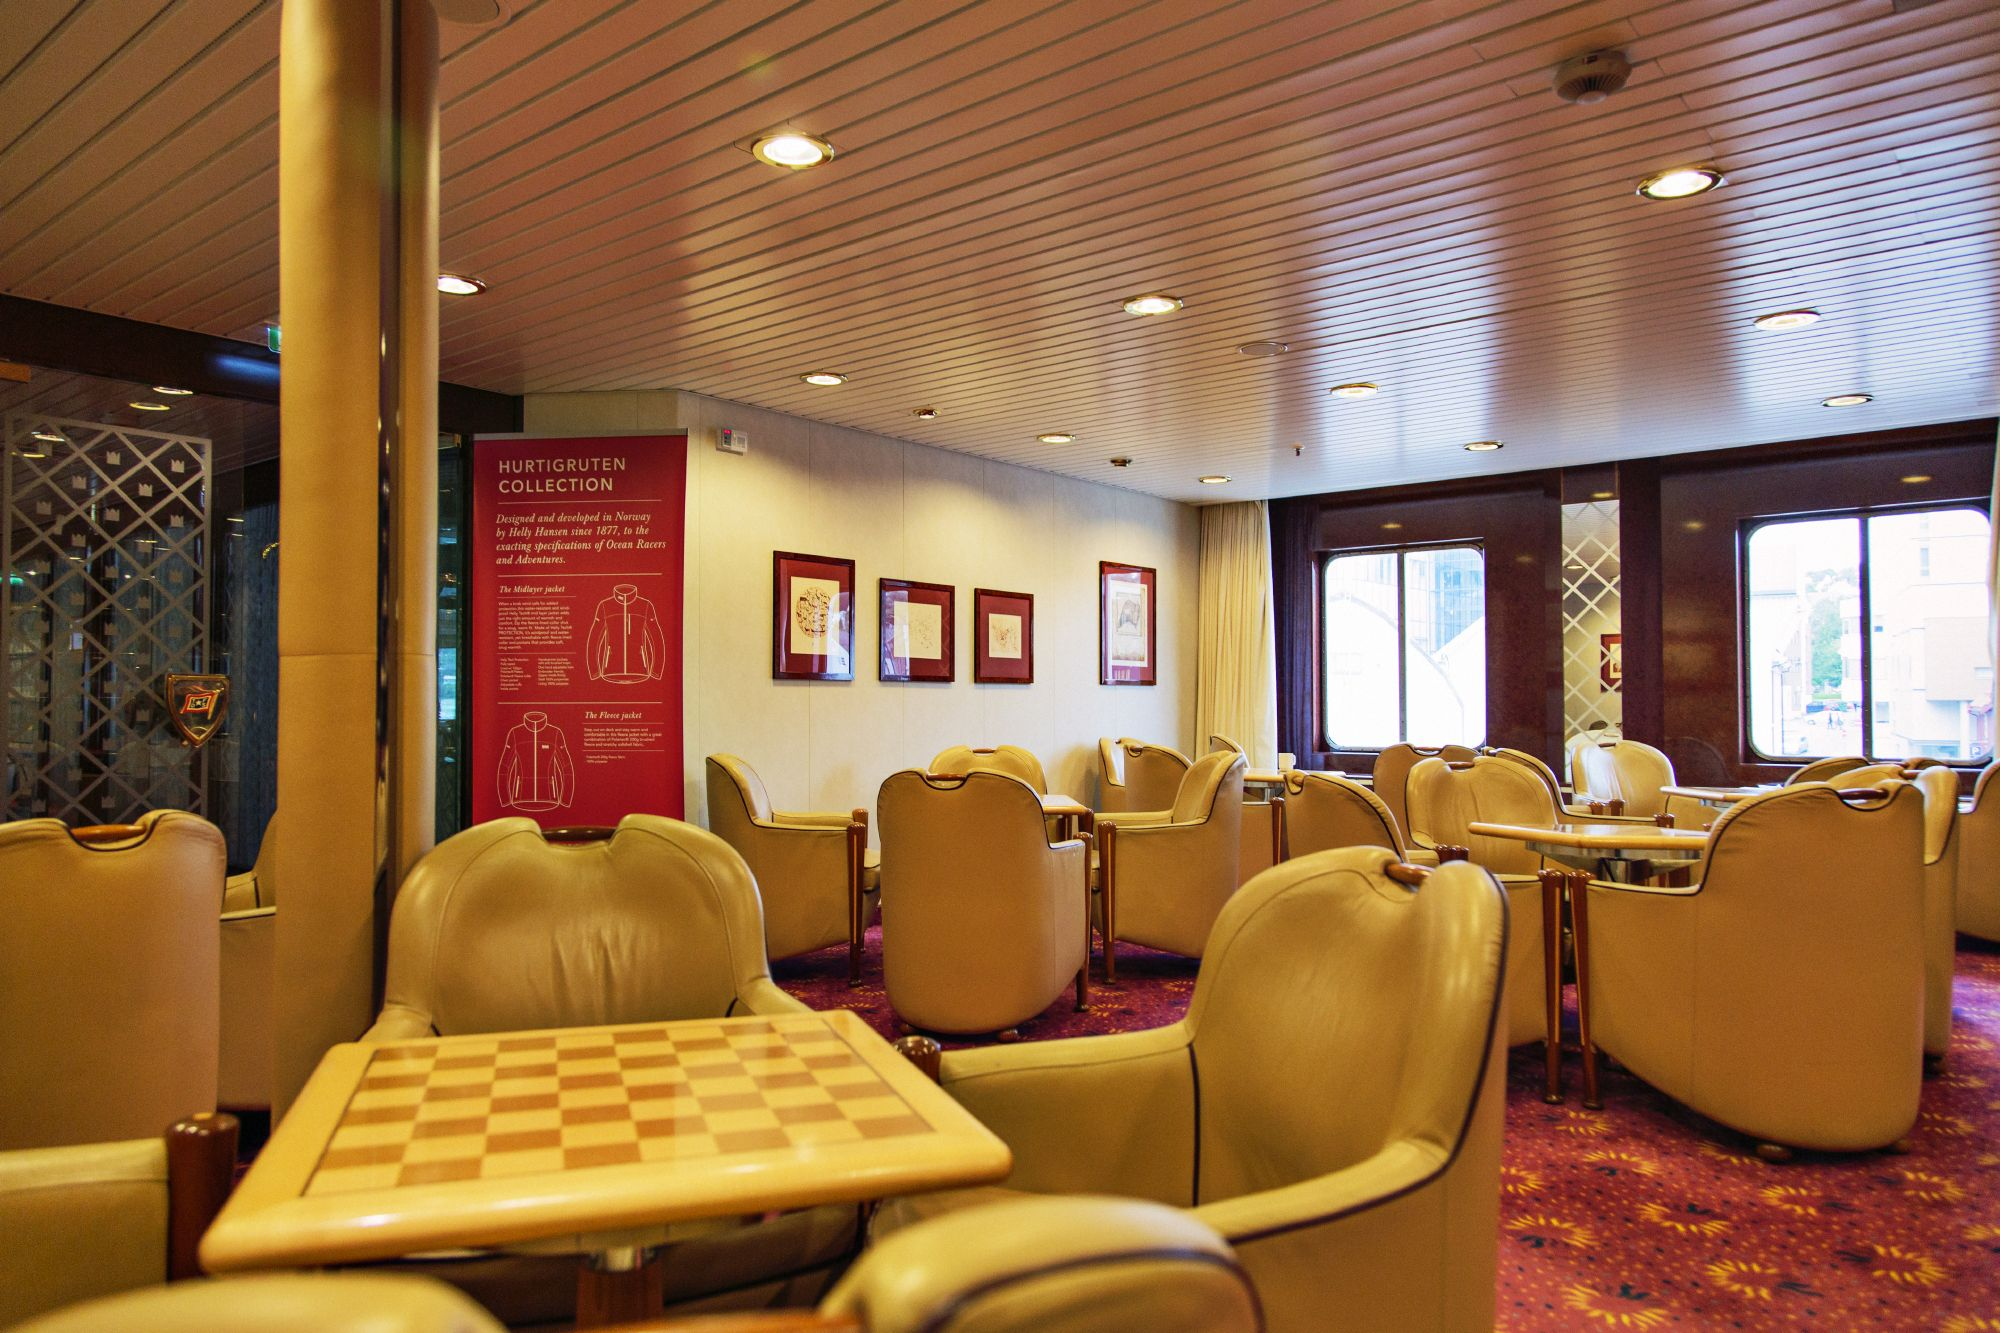 Hurtigruten Cruise Lines MS Kong Harald Interior Gaming Lounge.jpg